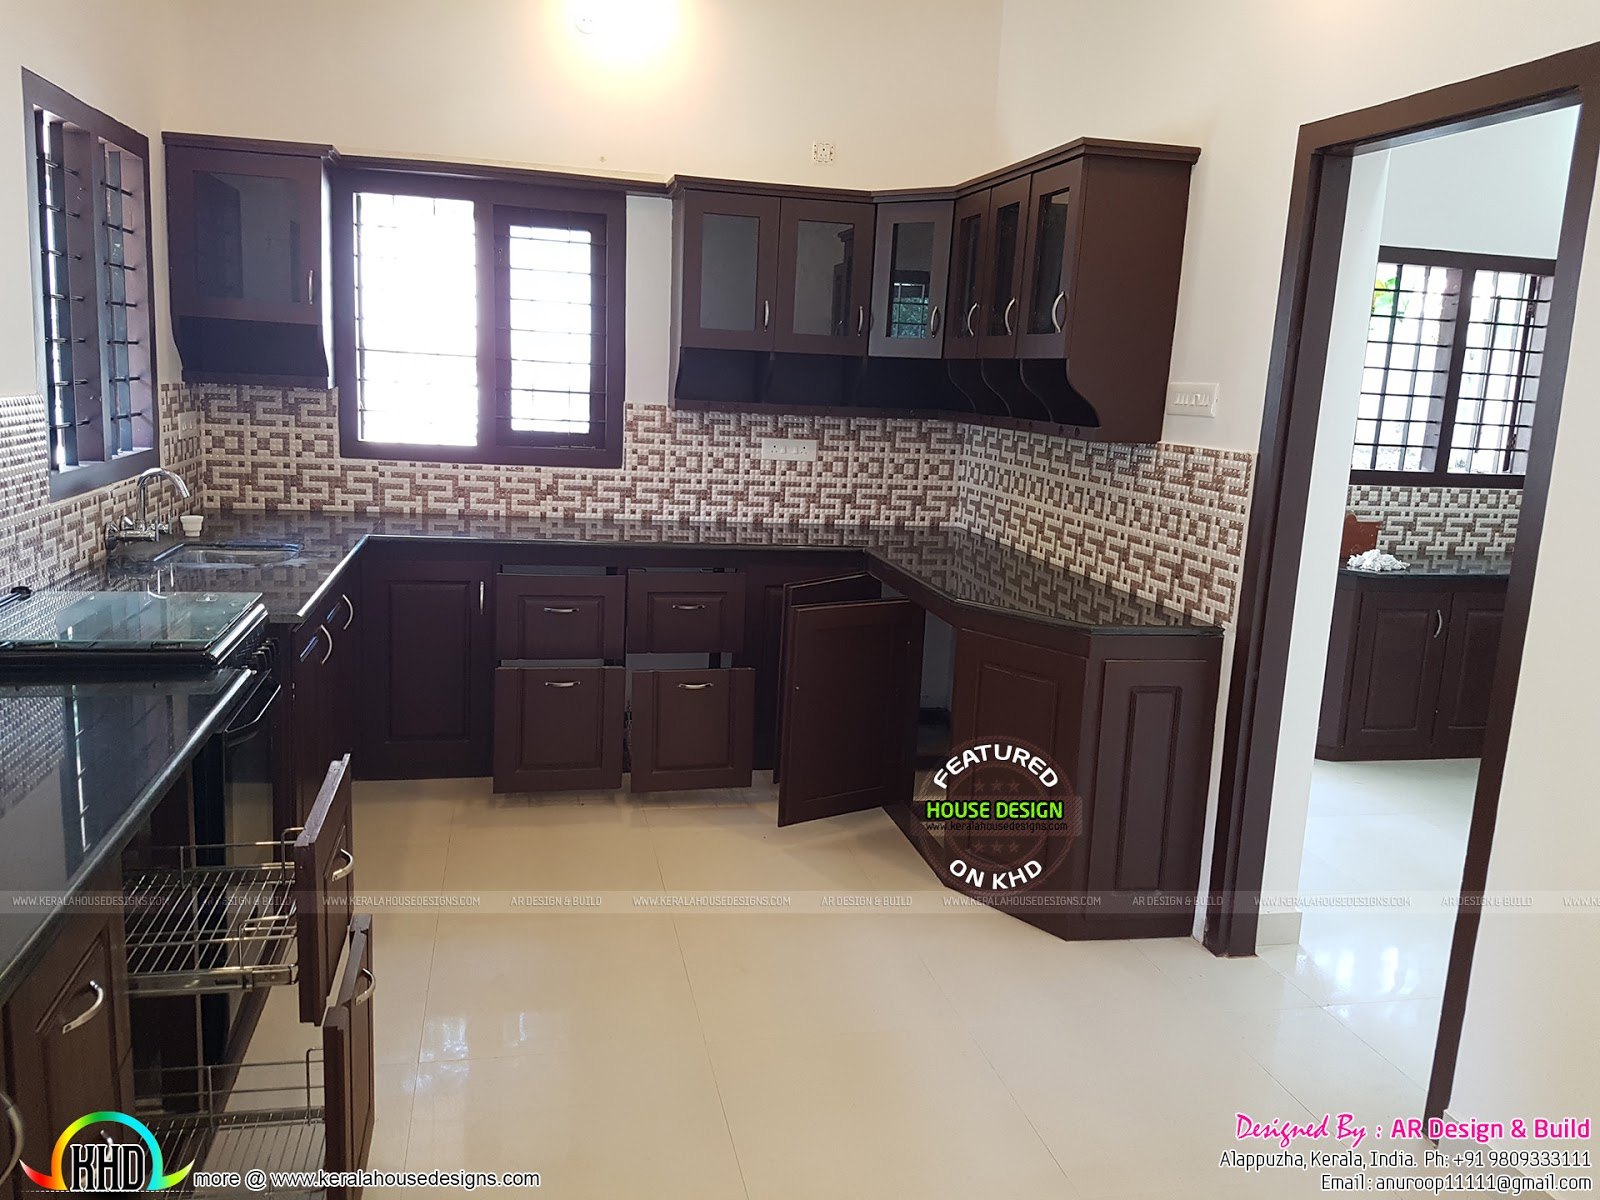 finished kerala home design with interior photos kerala home design and floor plans. Black Bedroom Furniture Sets. Home Design Ideas